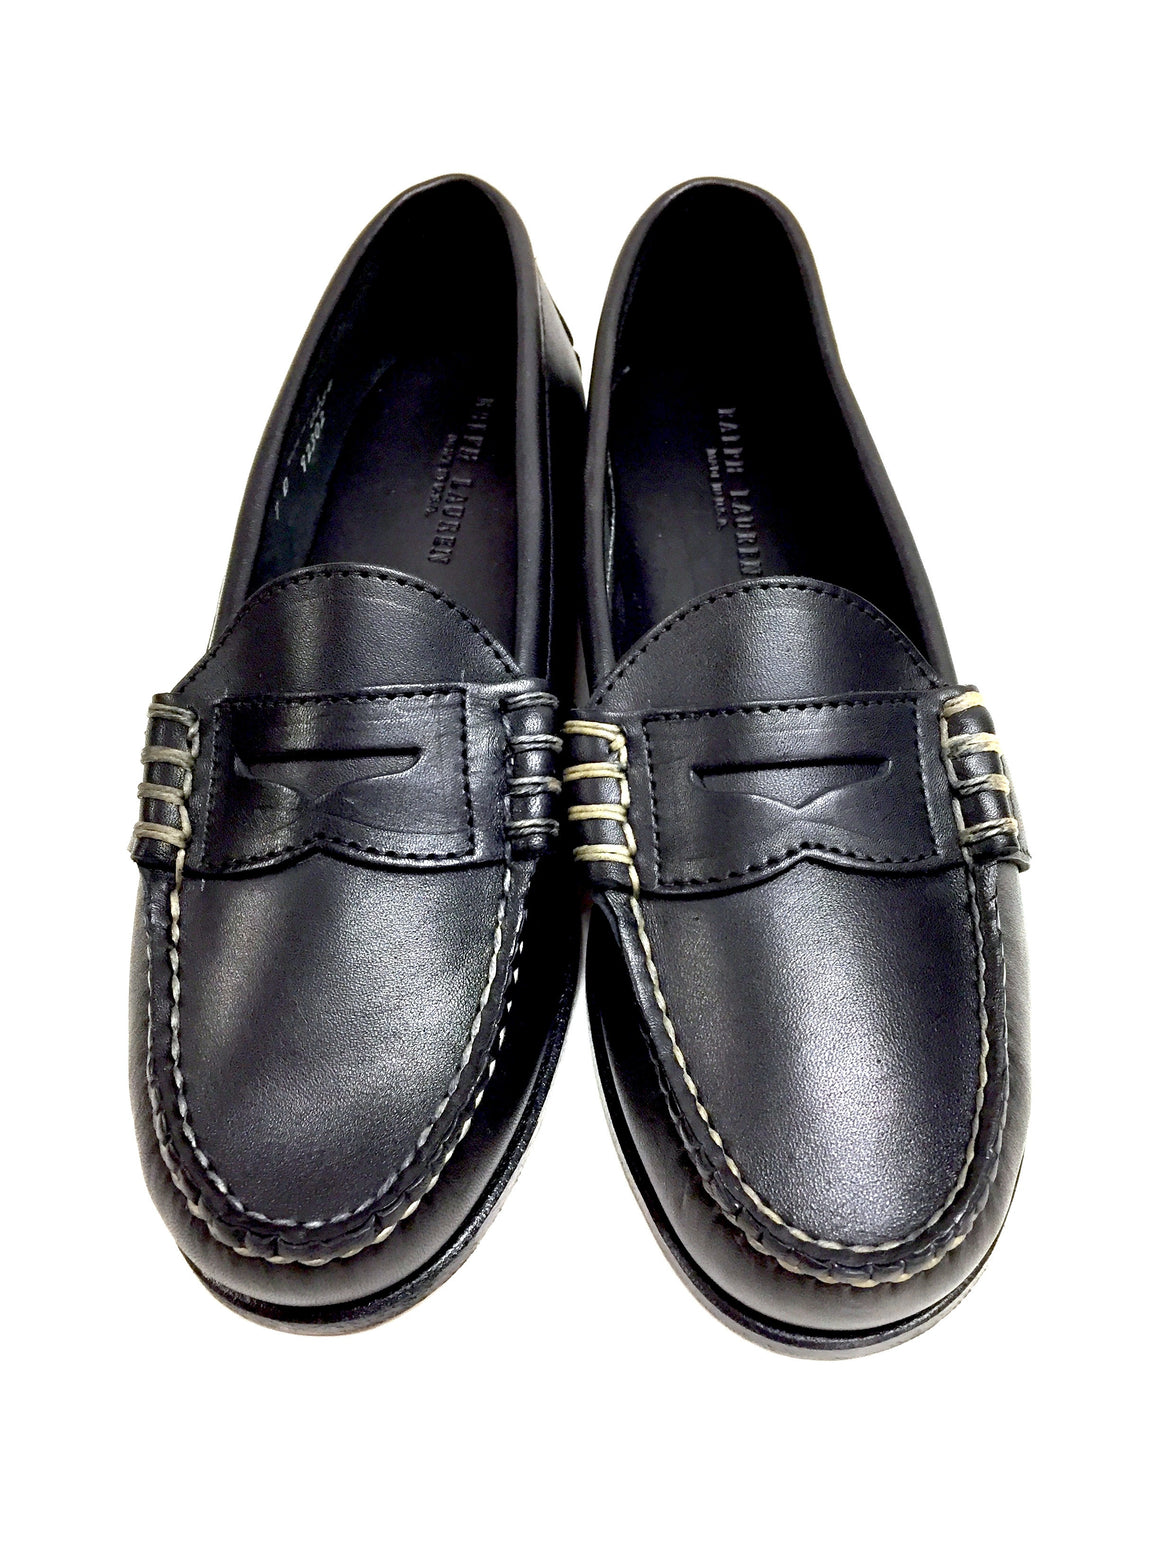 "bisbiz.com RALPH LAUREN  Black Leather Boys/Men ""EDRIC"" Classic Penny Loafer Shoes  Size: 7D - Bis Luxury Resale"